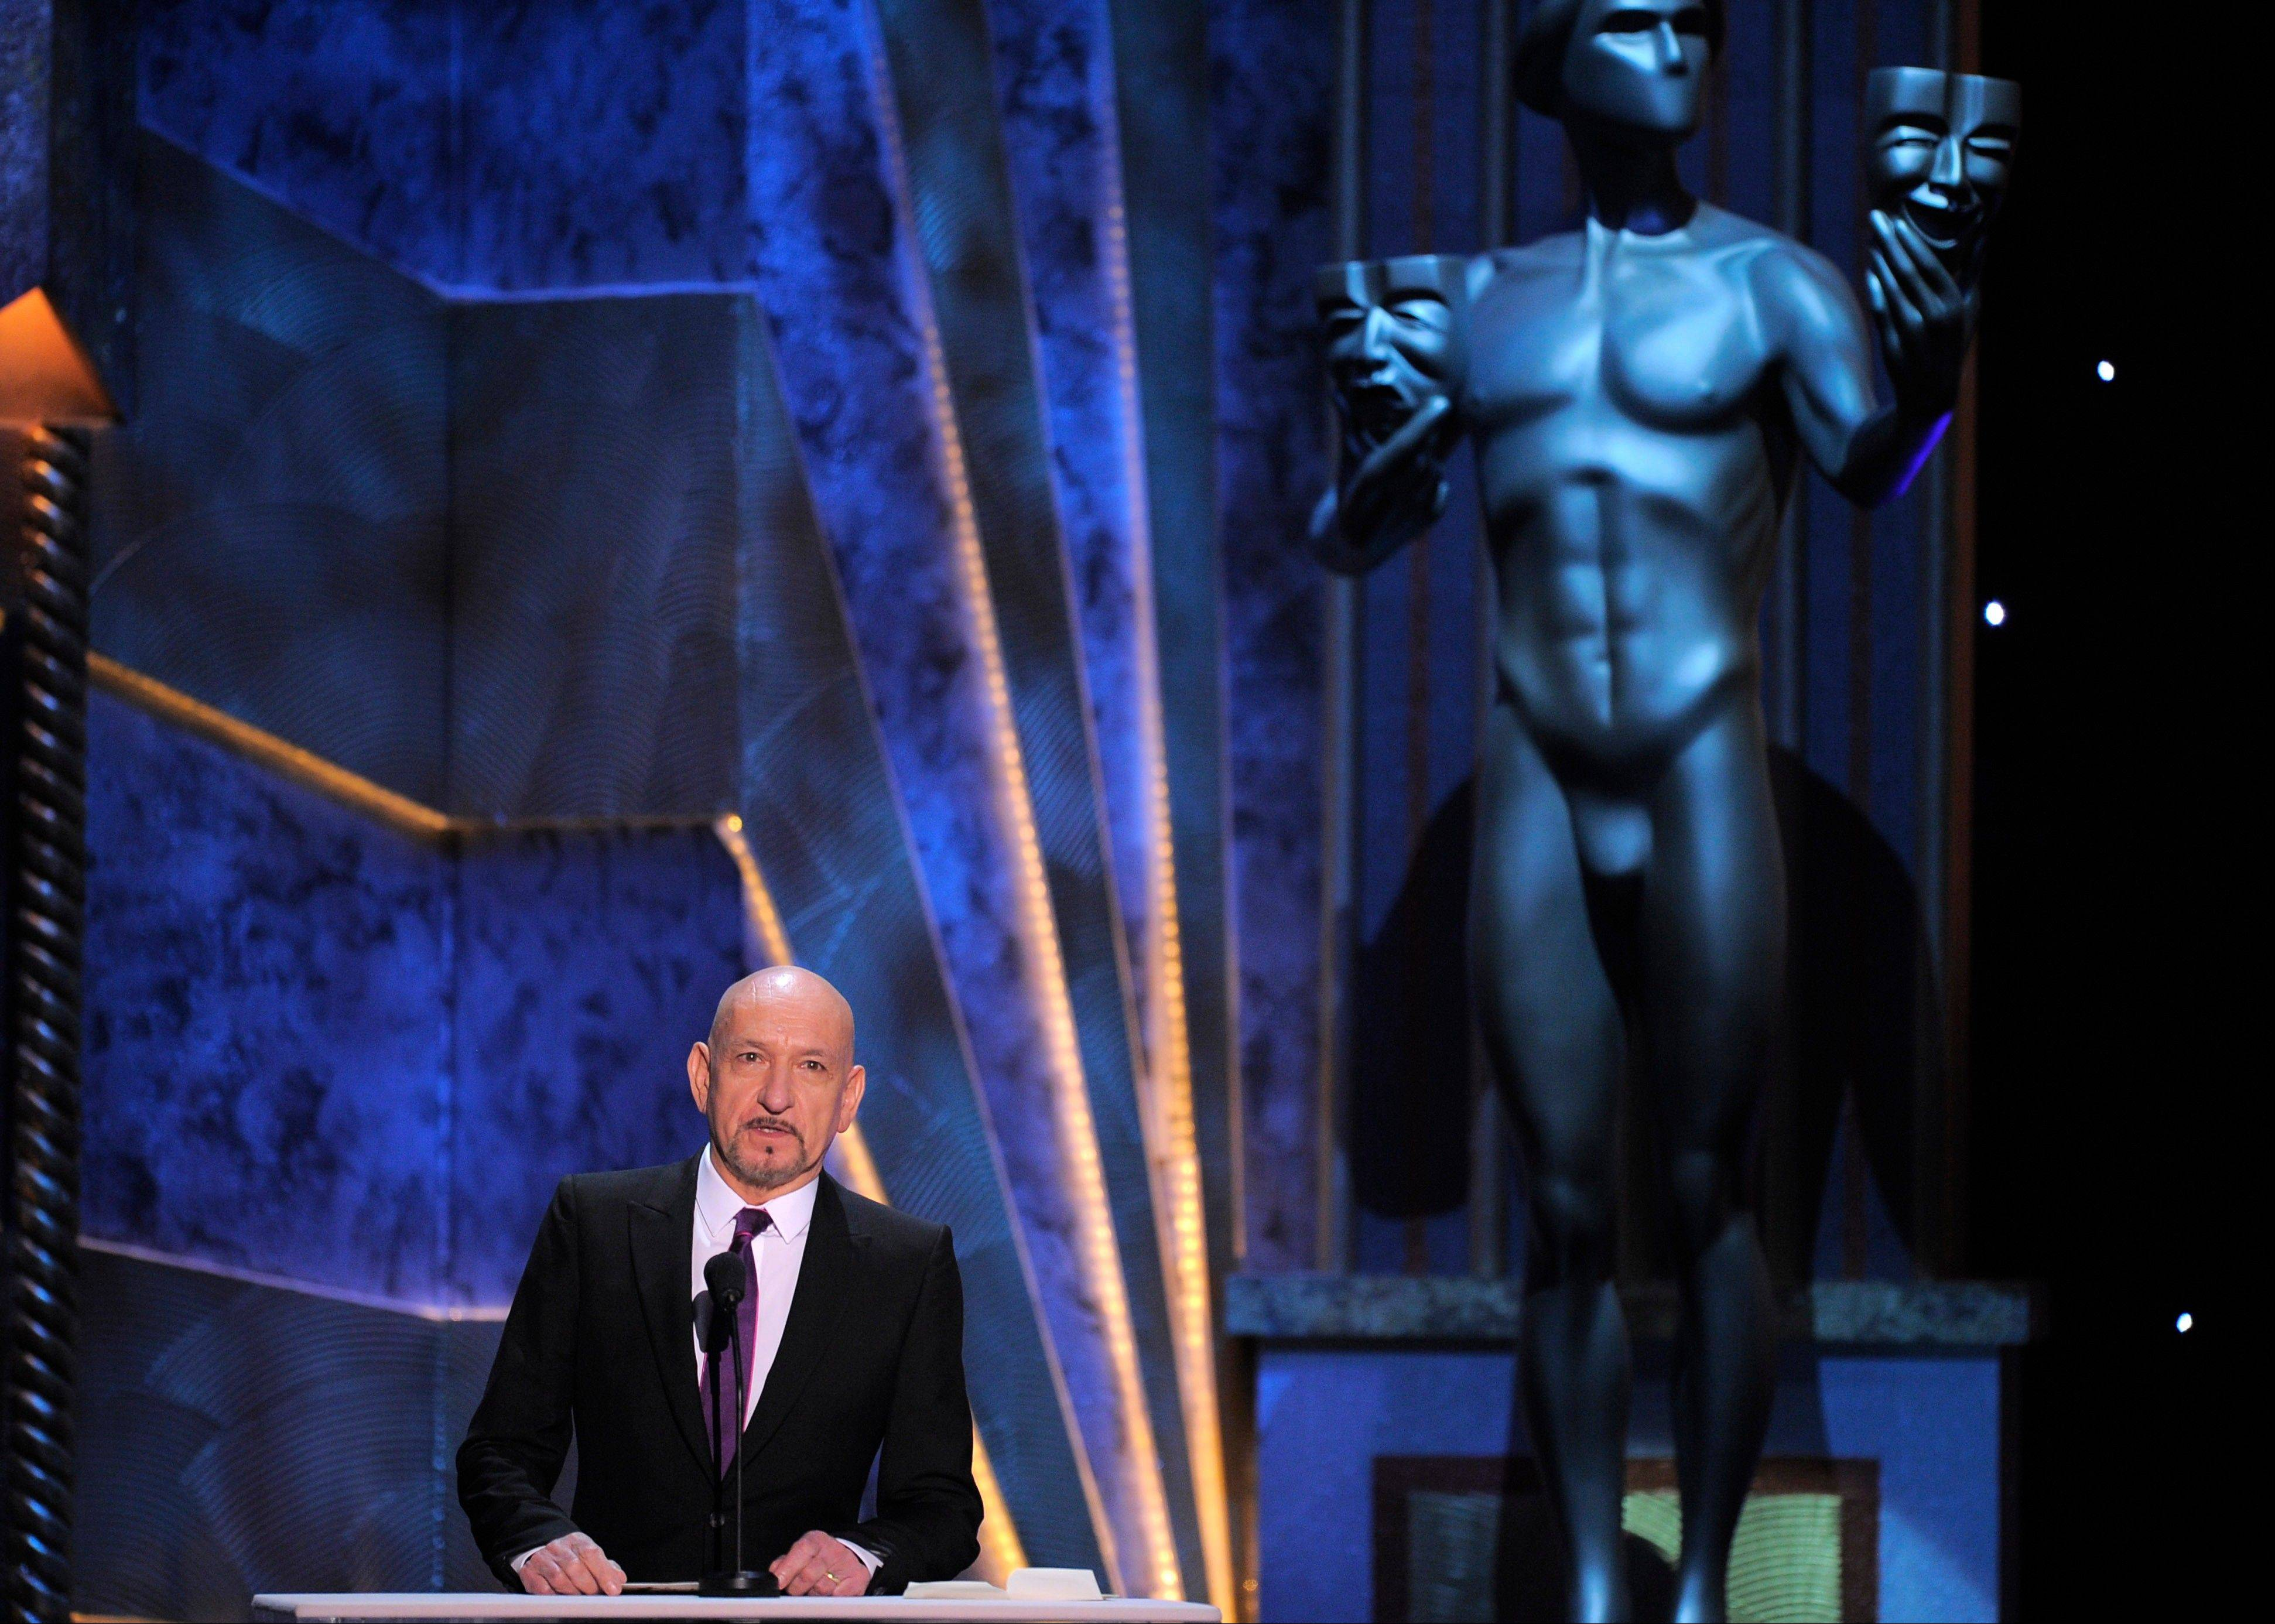 ASSOCIATED PRESSSir Ben Kingsley presents the award for outstanding performance by a female actor in a leading role.